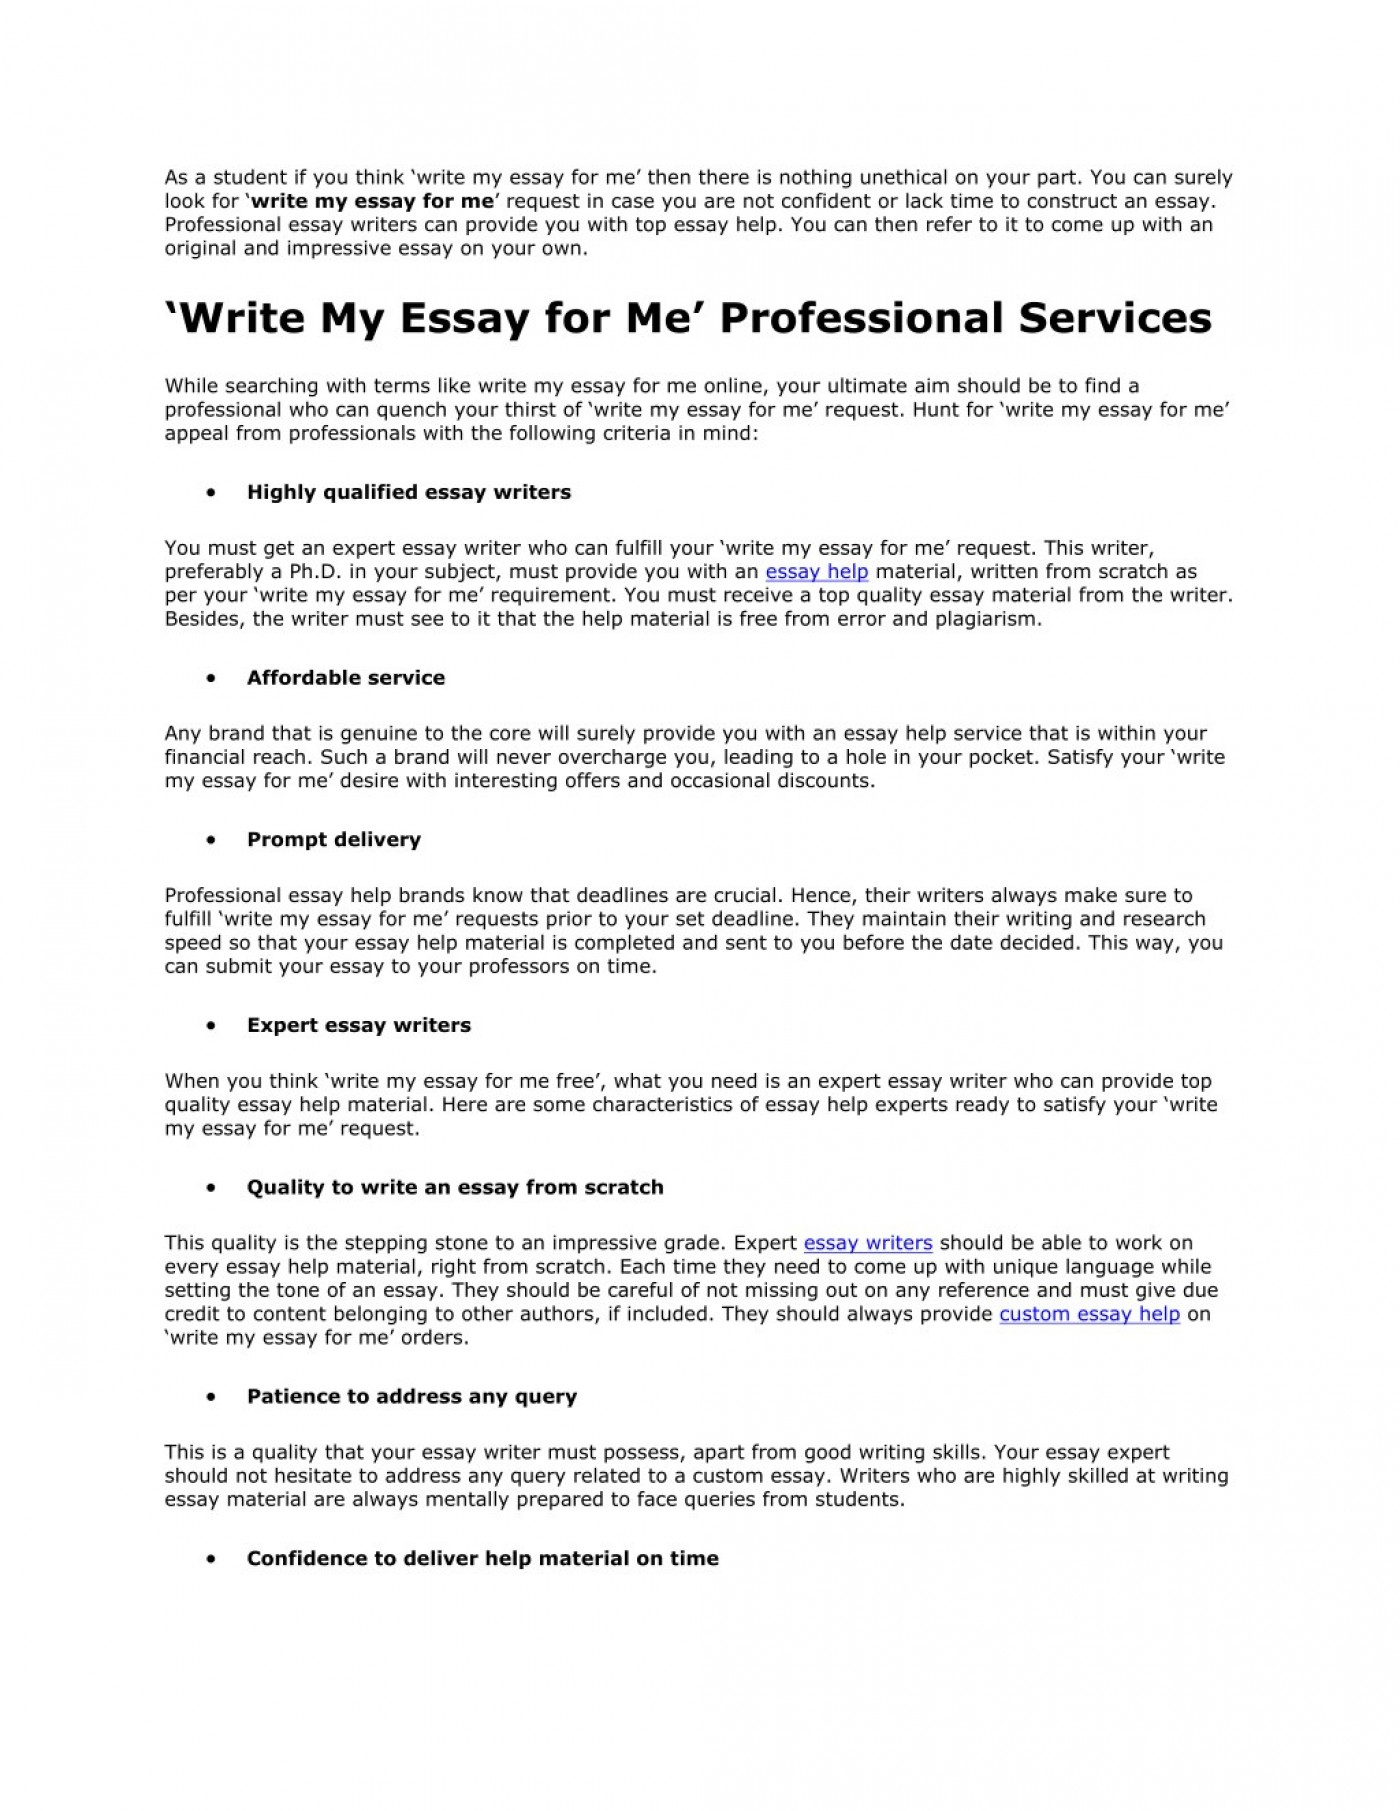 017 Write My Essay For Me Example As Student If You Think Surprising Please Generator Free Online 1400